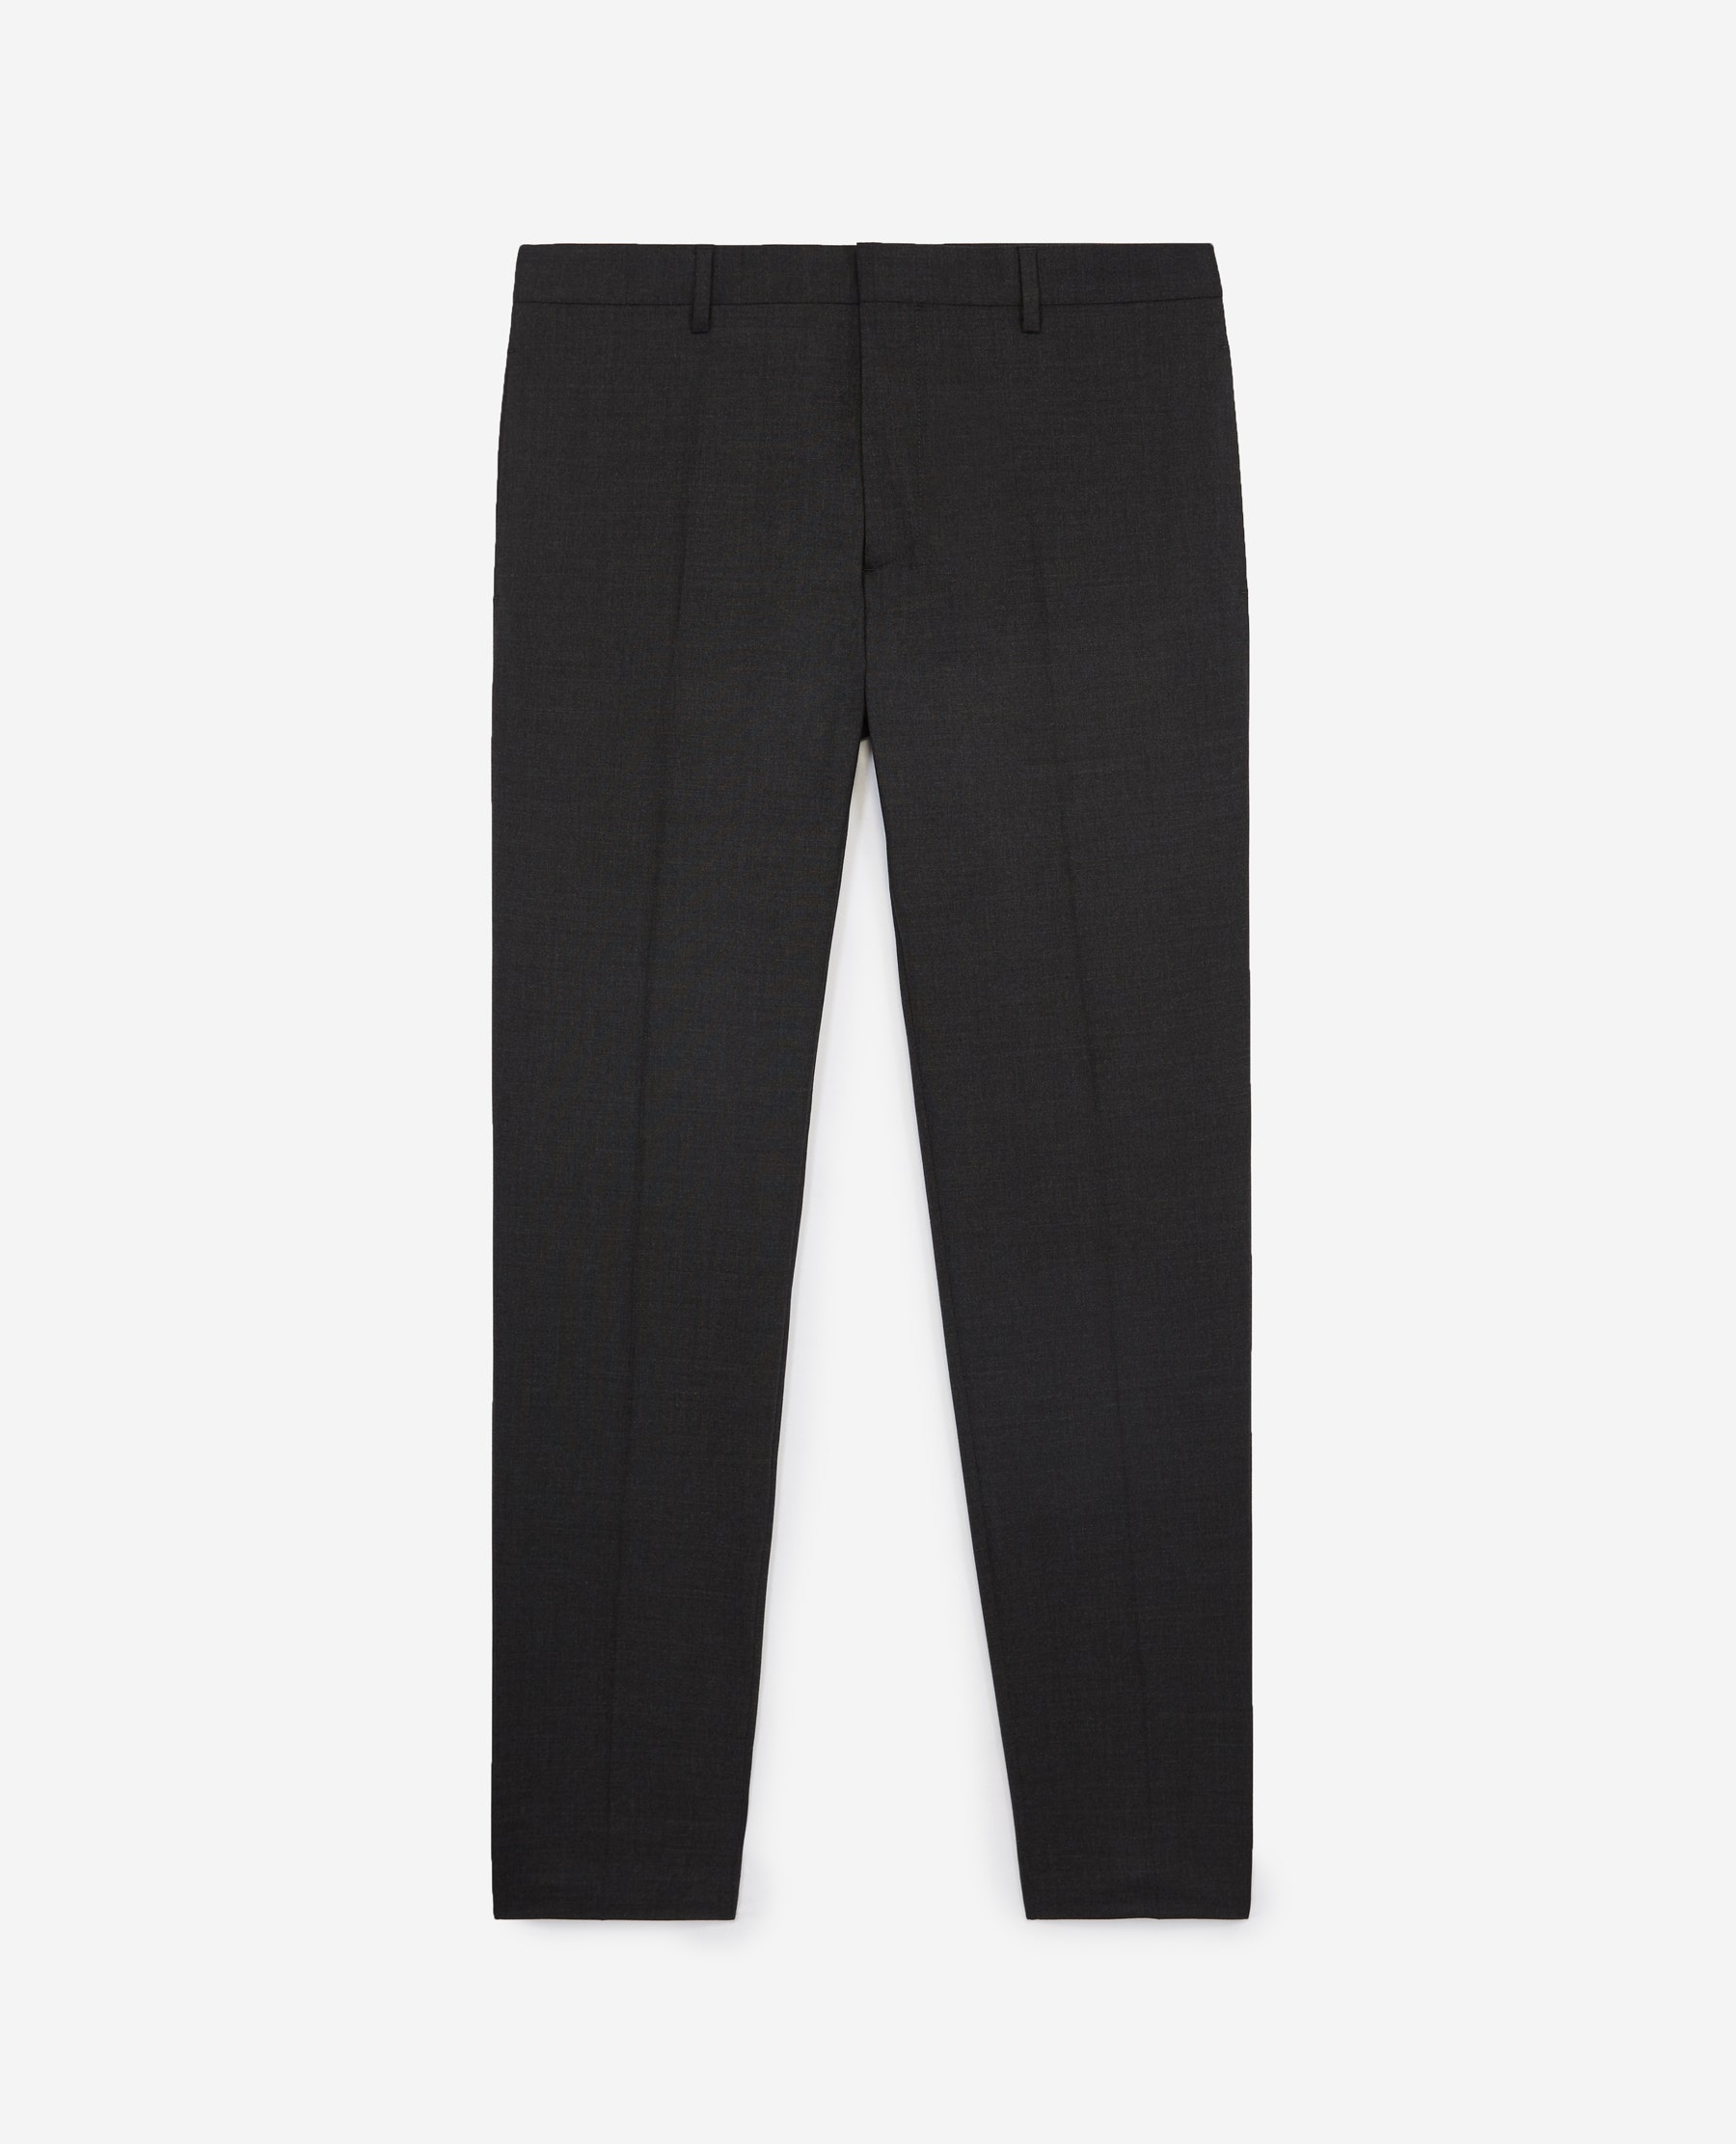 Pantalon costume slim doublé laine - The Kooples - Modalova